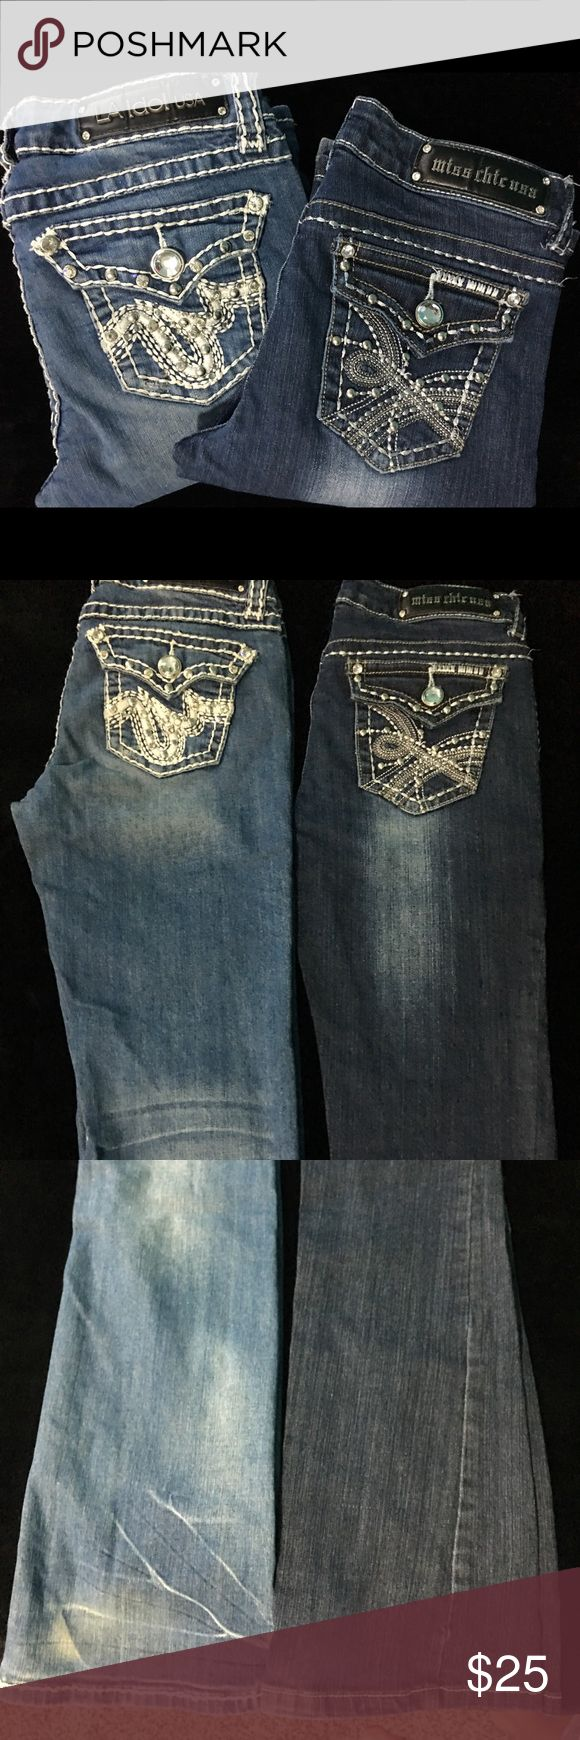 "LA Idol and Miss Chic Jean Bundle Great condition Jeans some signs of wear both pairs of jeans have all the rhinestones the LA Idol jeans are size 7 and length is 34"" has some discoloration on bottom of pant legs but no wear marks and the Miss Chic jeans are size 7 inseam is 32"" some wear on the bottom or one pant leg but not much  I would like to sell as a bundle for $25 obo but will sell separately just let me know all reasonable offers will be considered Jeans Straight Leg"